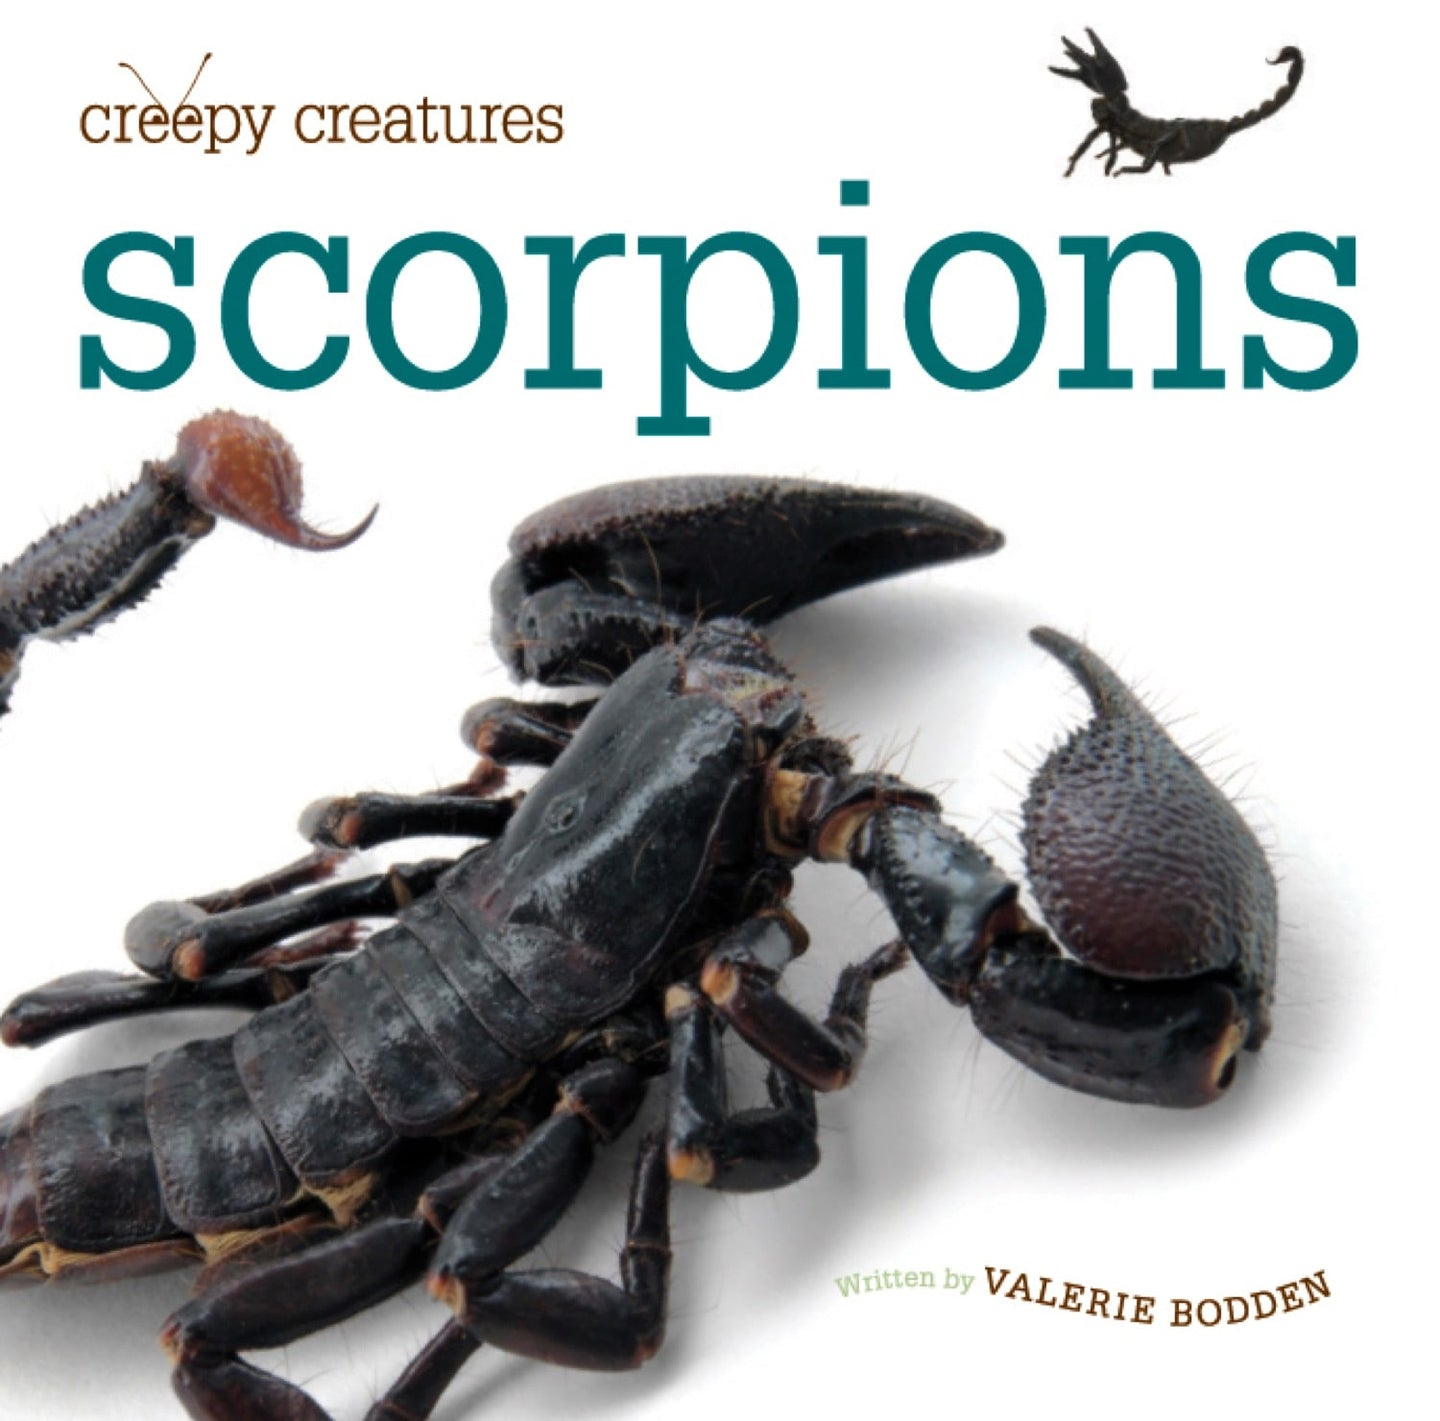 Creepy Creatures: Scorpions